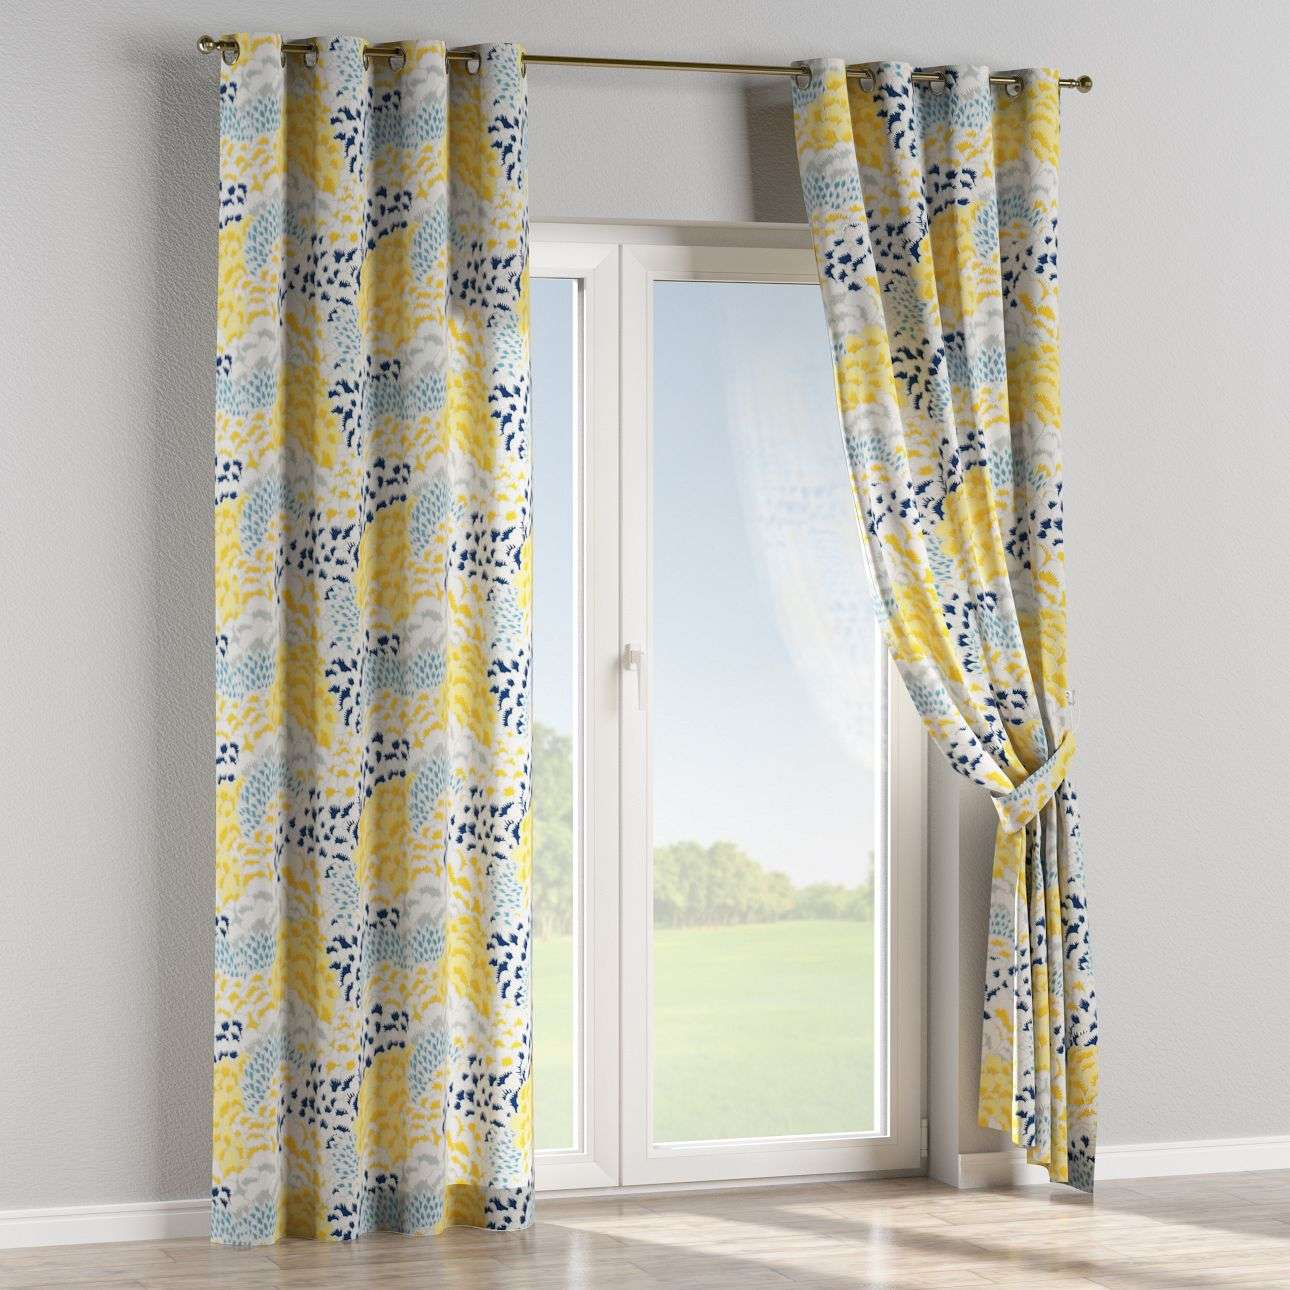 Eyelet curtains in collection Brooklyn, fabric: 137-86